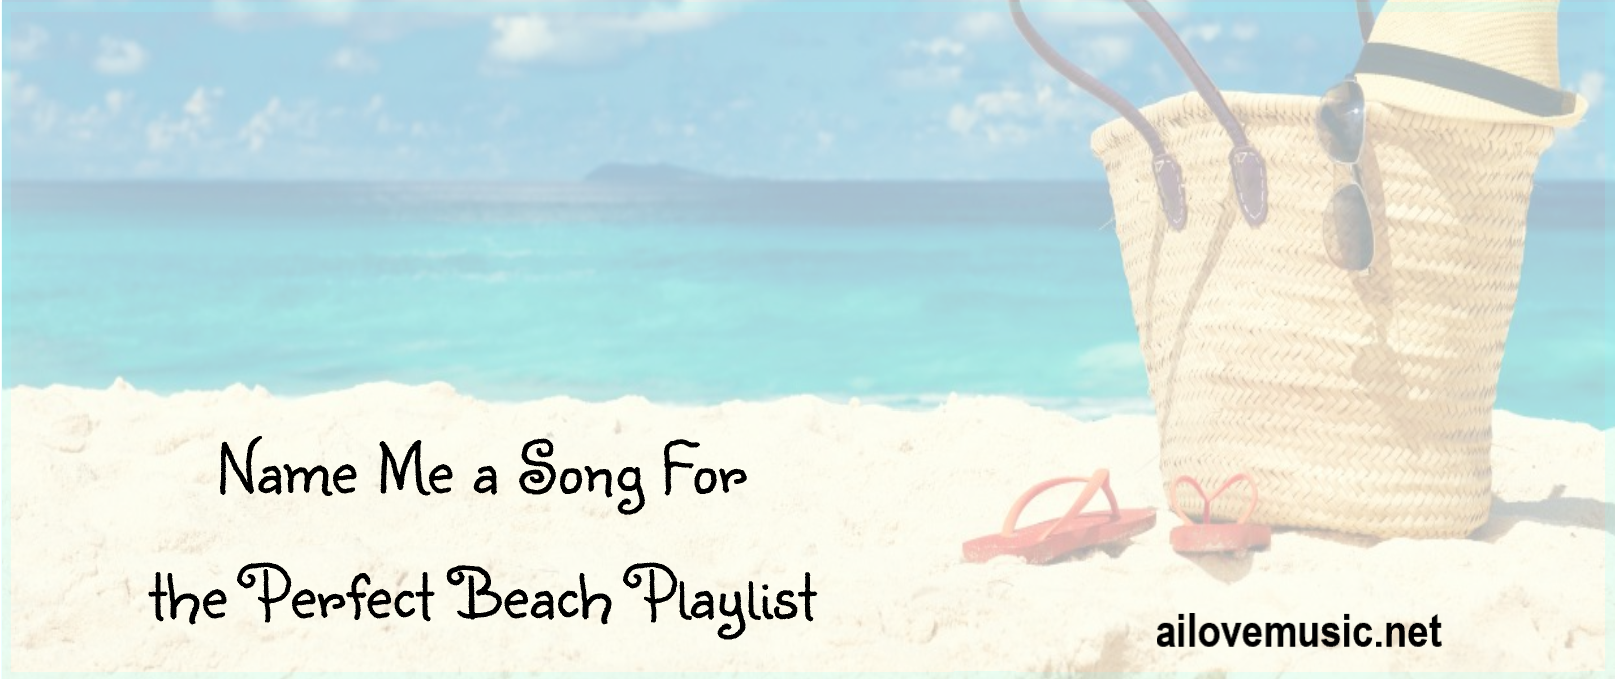 Name Me a Song For the Perfect Beach Playlist